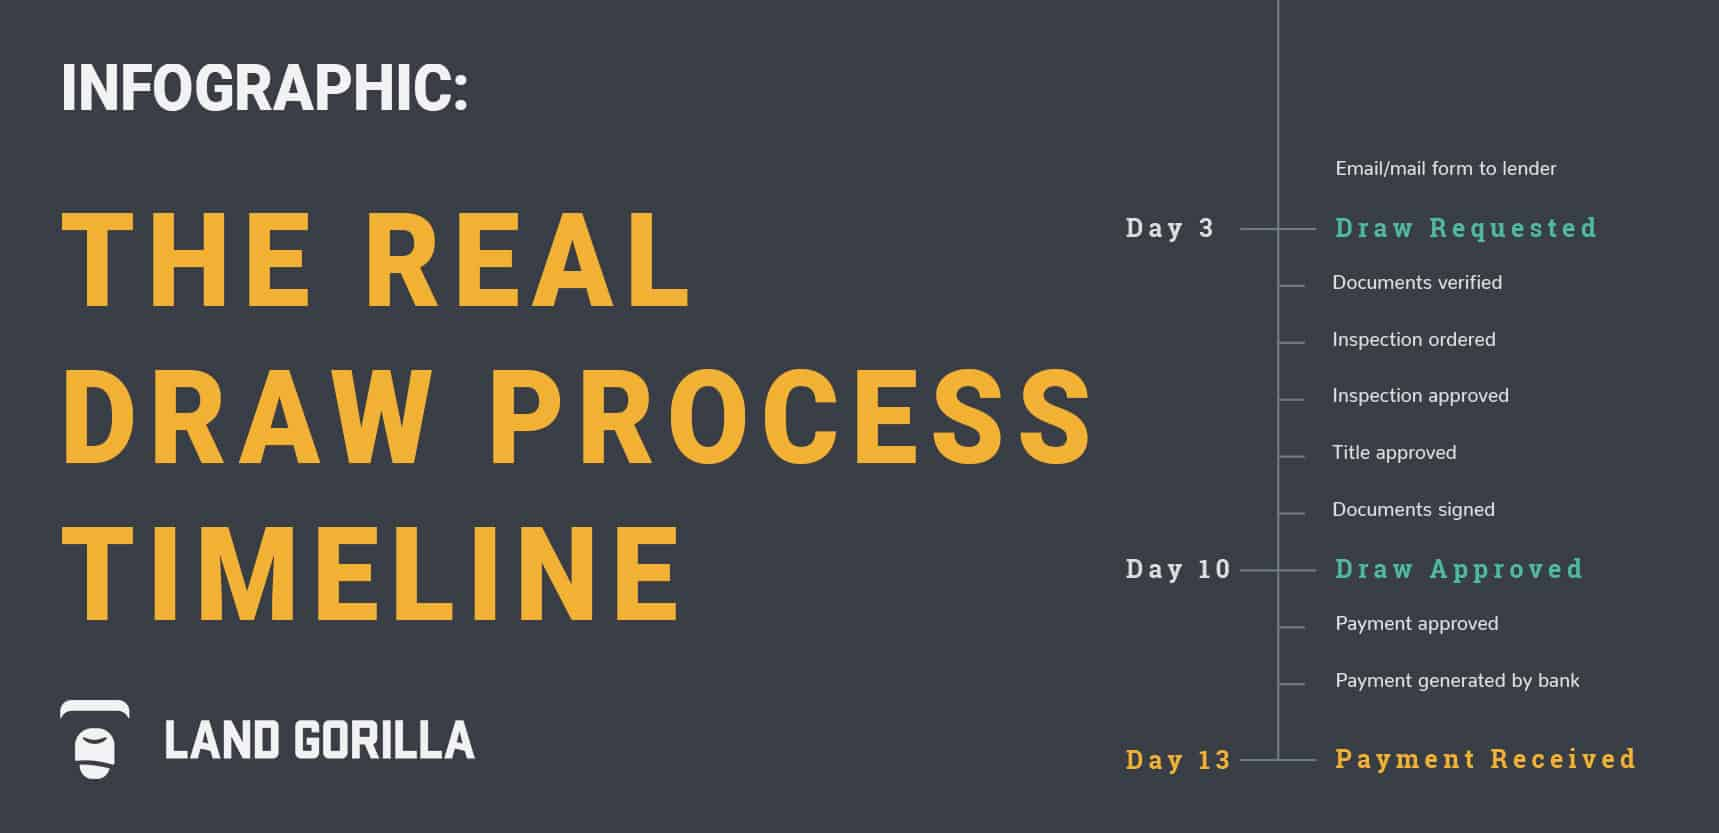 Land Gorilla Infographic | The Real Draw Process Timeline | Blog